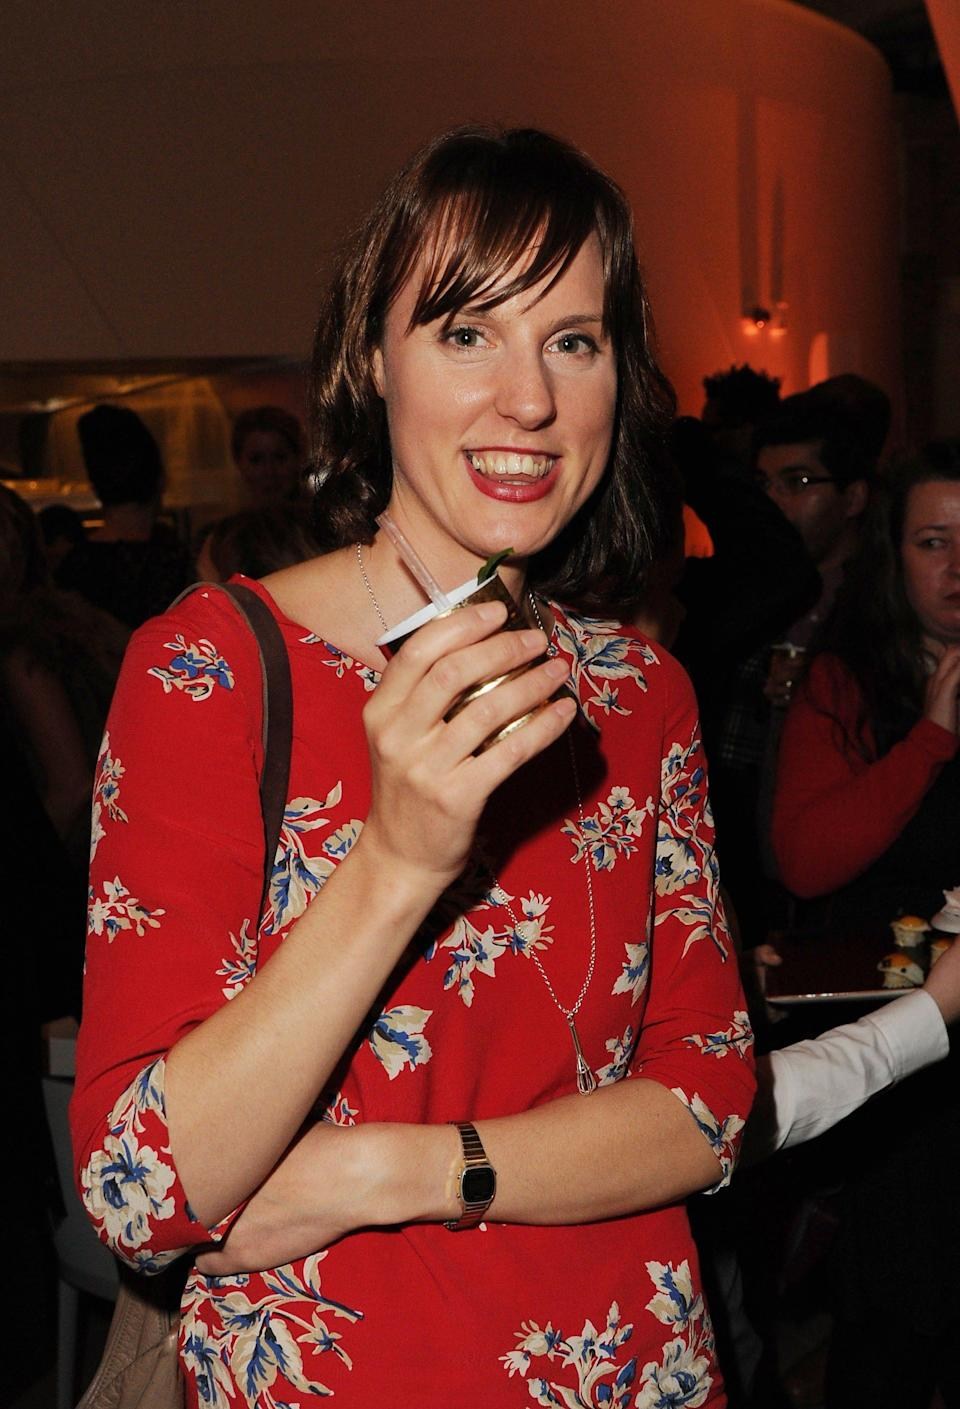 """Frances, who won the fourth series in 2013, is best remembered for her highly creative designs and has gone on to share her skills at shows and festivals around the UK. Many of her recipes have also appeared in newspapers and magazines and she's also popped up on many TV and radio shows. Her first book 'Quinntessential Baking' is set to be published on 27 August and promises to be """"a treasure trove of inspirational ideas to bring a spark of creativity and a teaspoon of wonder into your kitchen."""""""